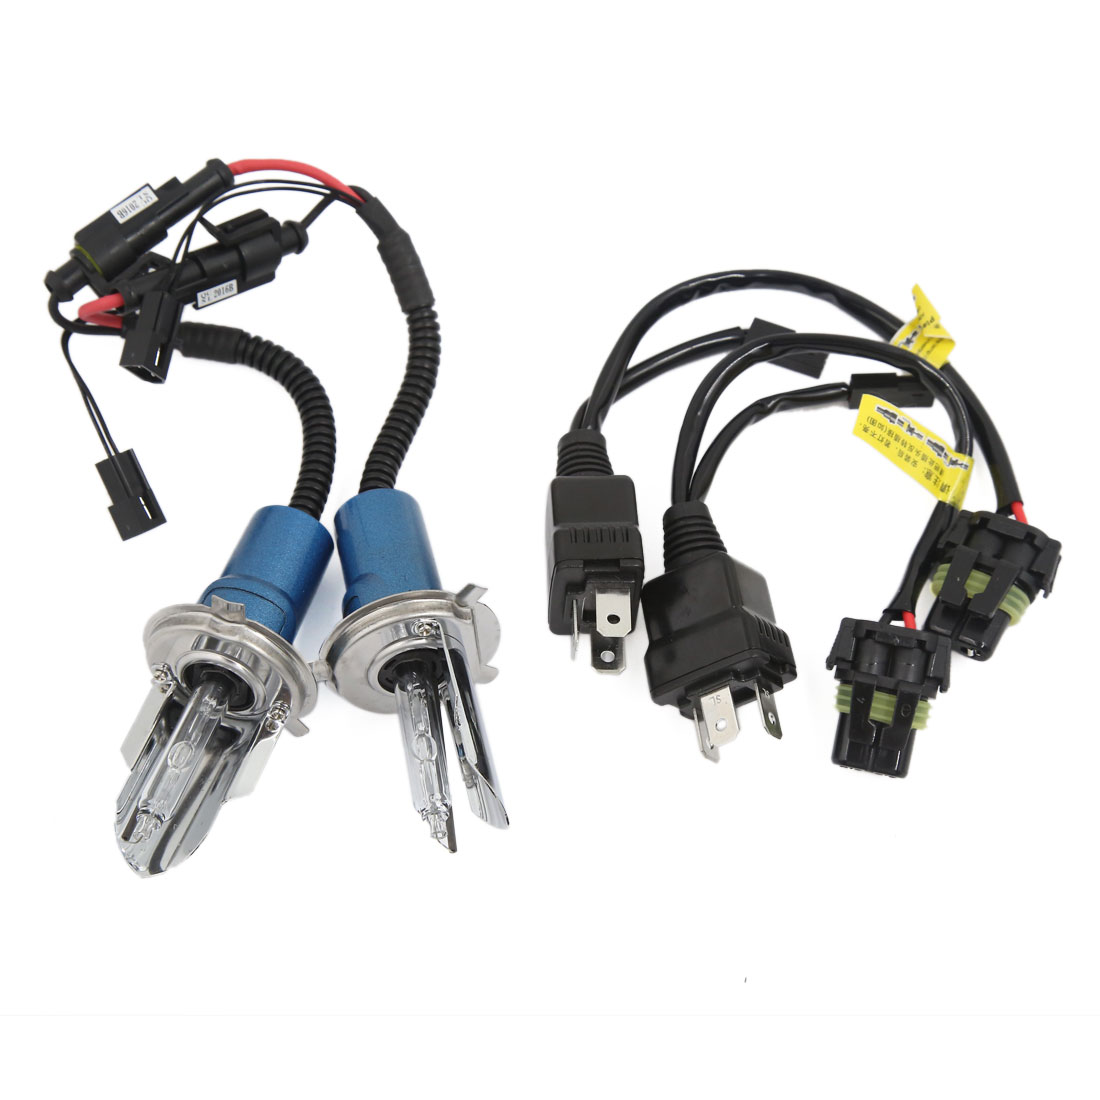 2PCS DC12V 35W-45W 5500K H4 Vehicle Metal Cover HID Xenon Headlight Lamp Bulbs